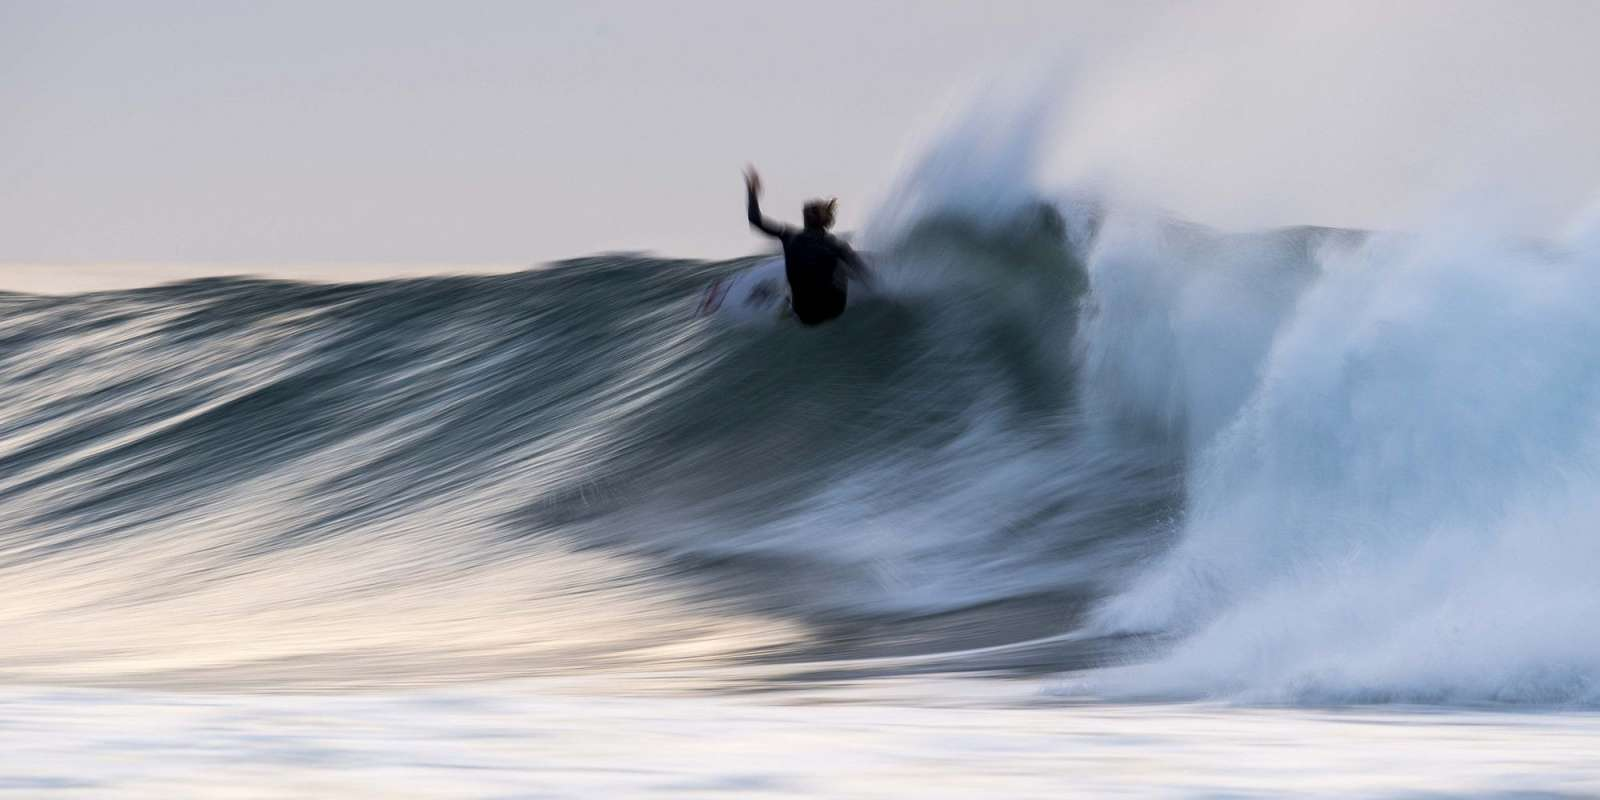 The second contest of the 2018 WSL Championship Tour kicks off this week at Bells Beach, just outside of the quiet surf town of Torquay, Australia